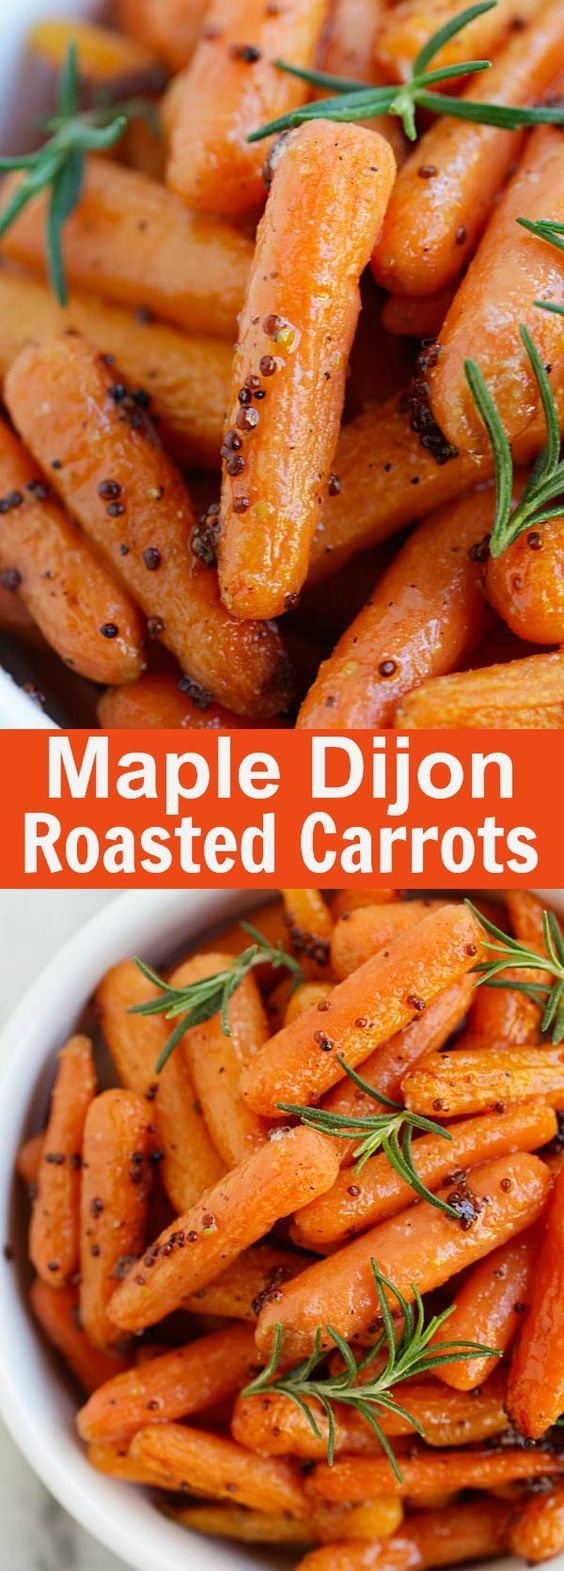 recipe: roasted parsnips and carrots with maple syrup [17]